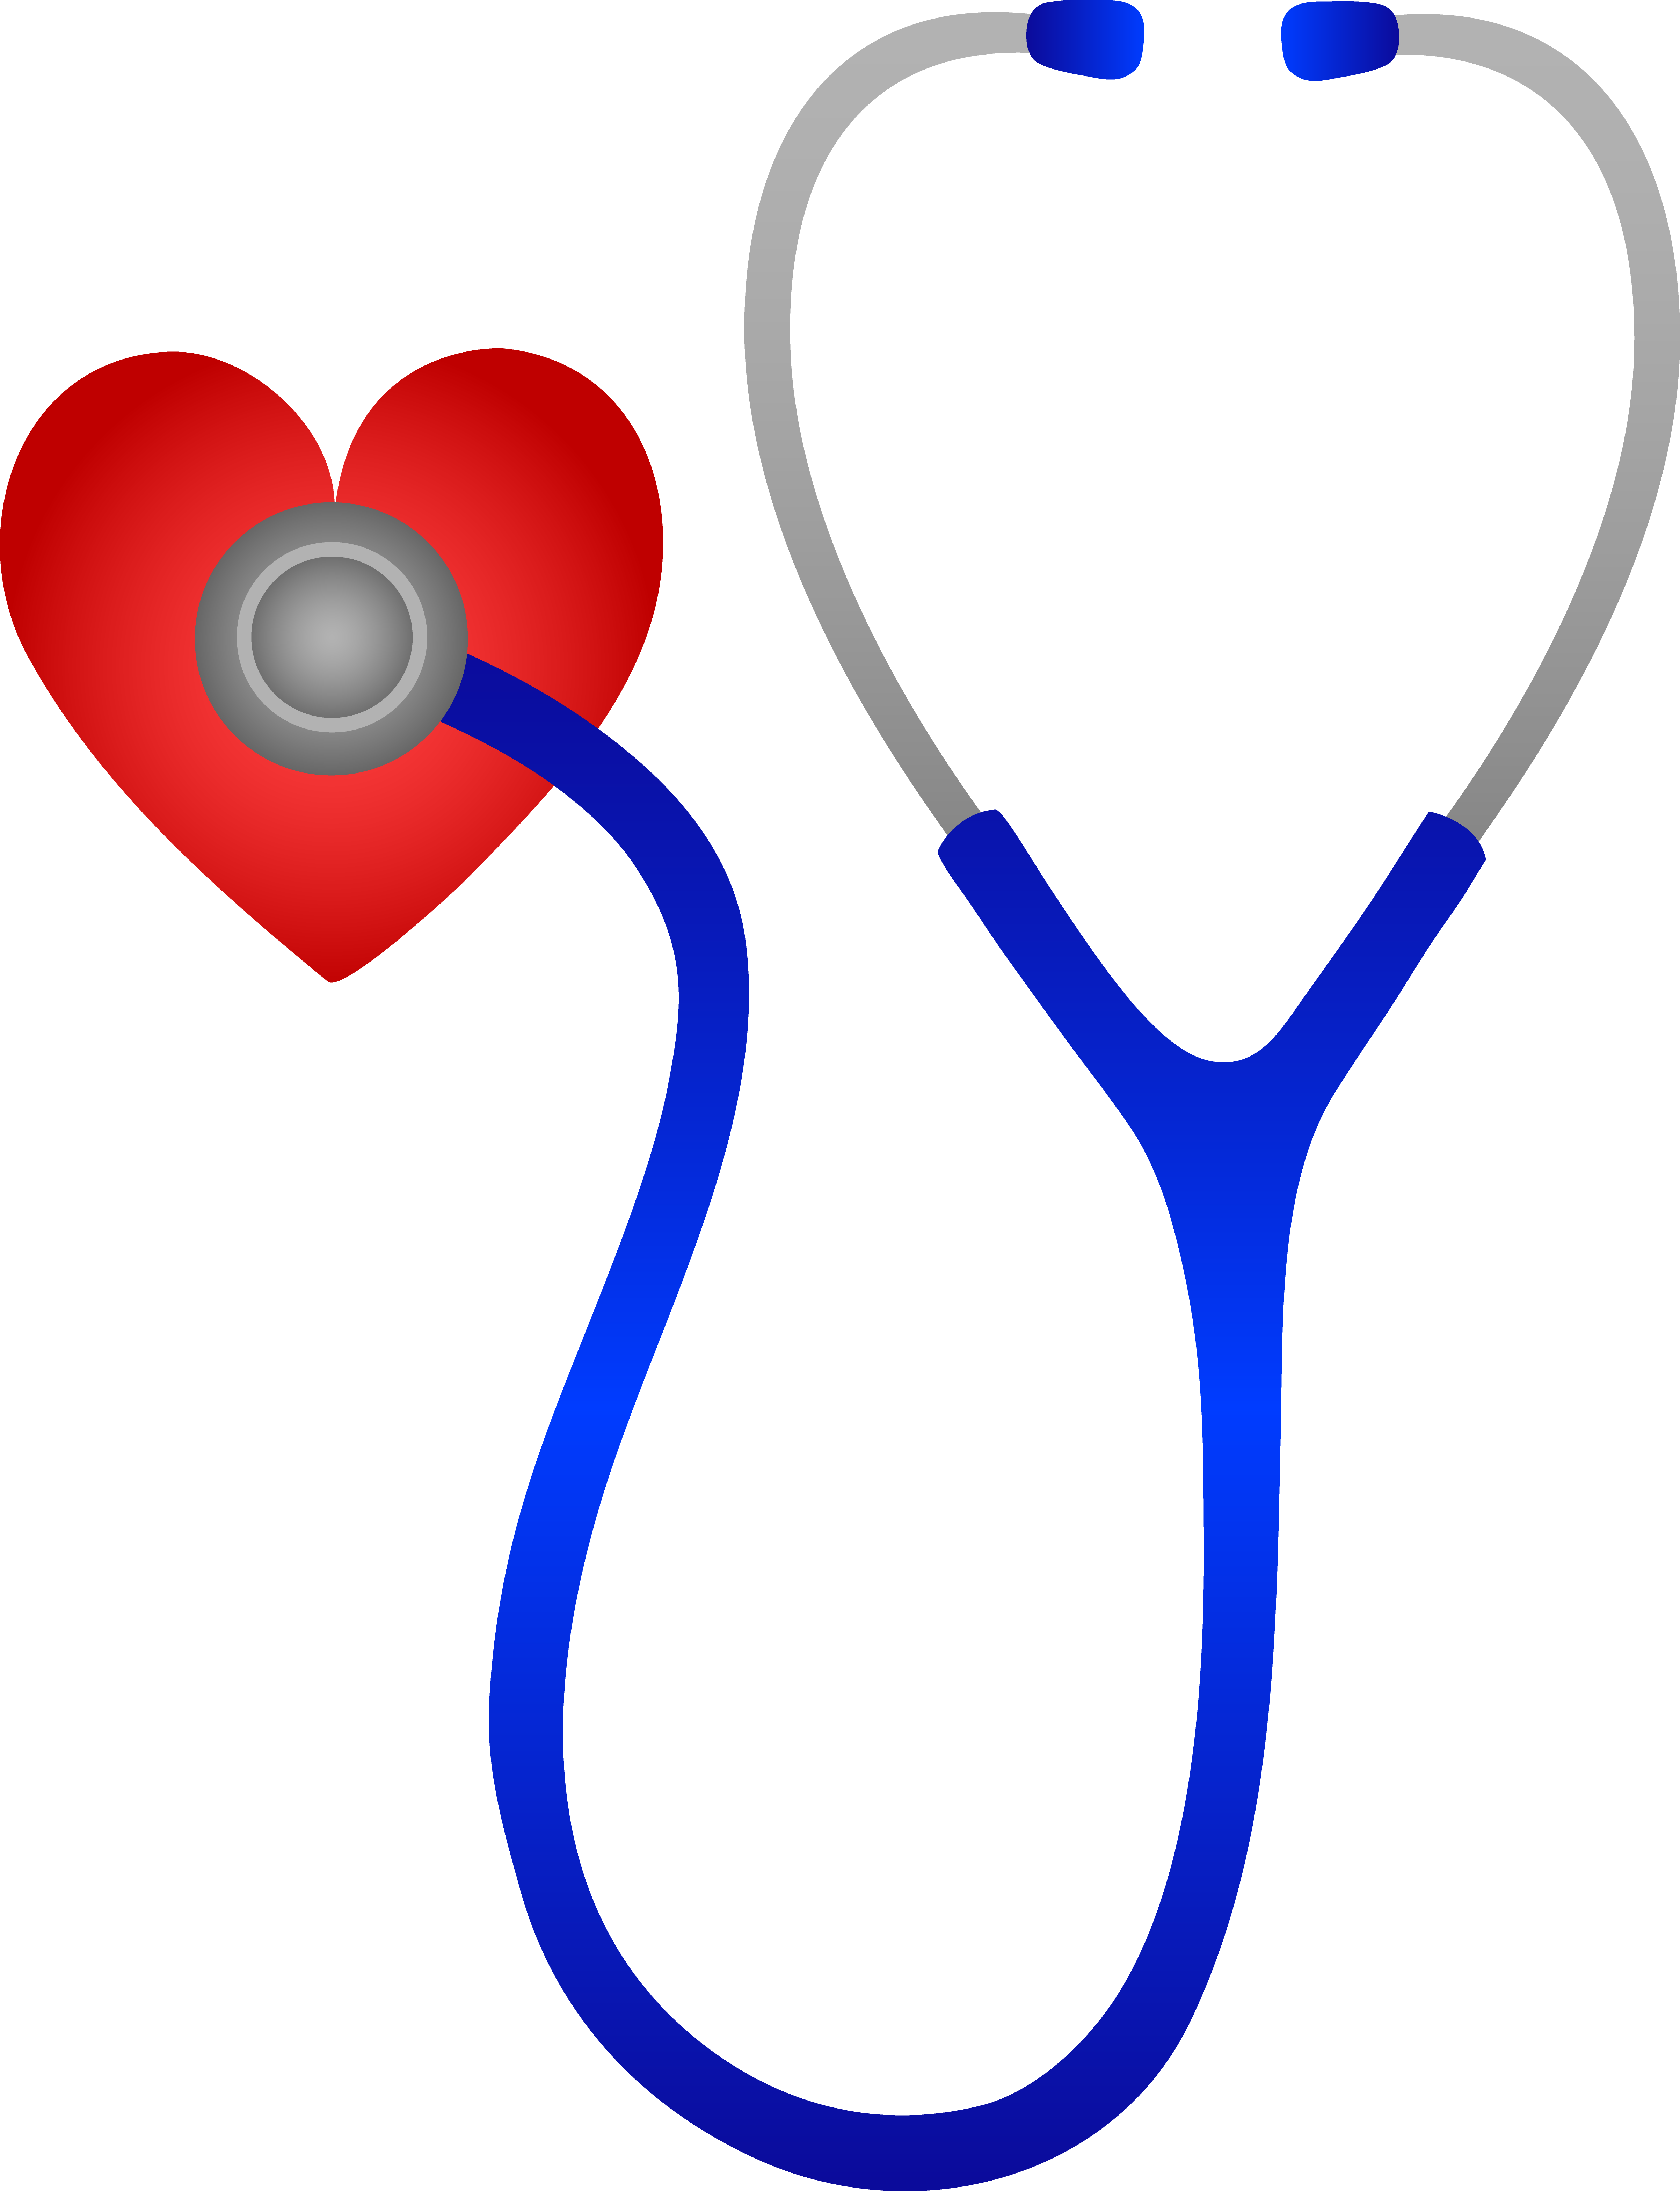 4809x6271 Stethoscope Listening To Heart Beat